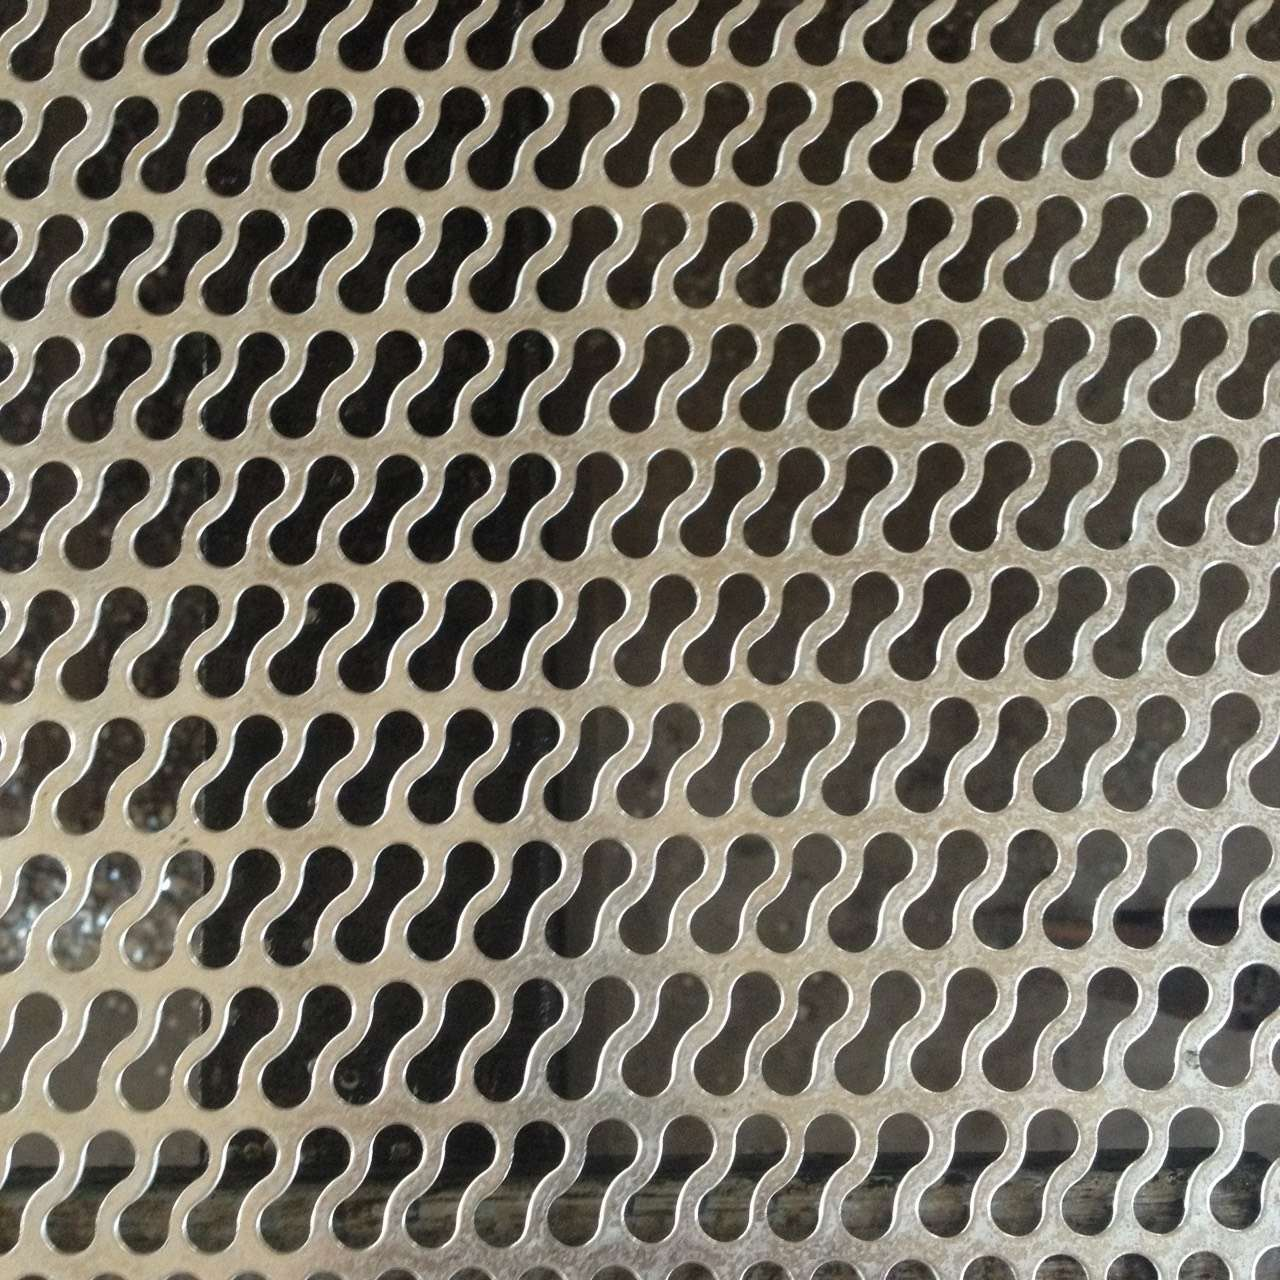 perforated metal (84)